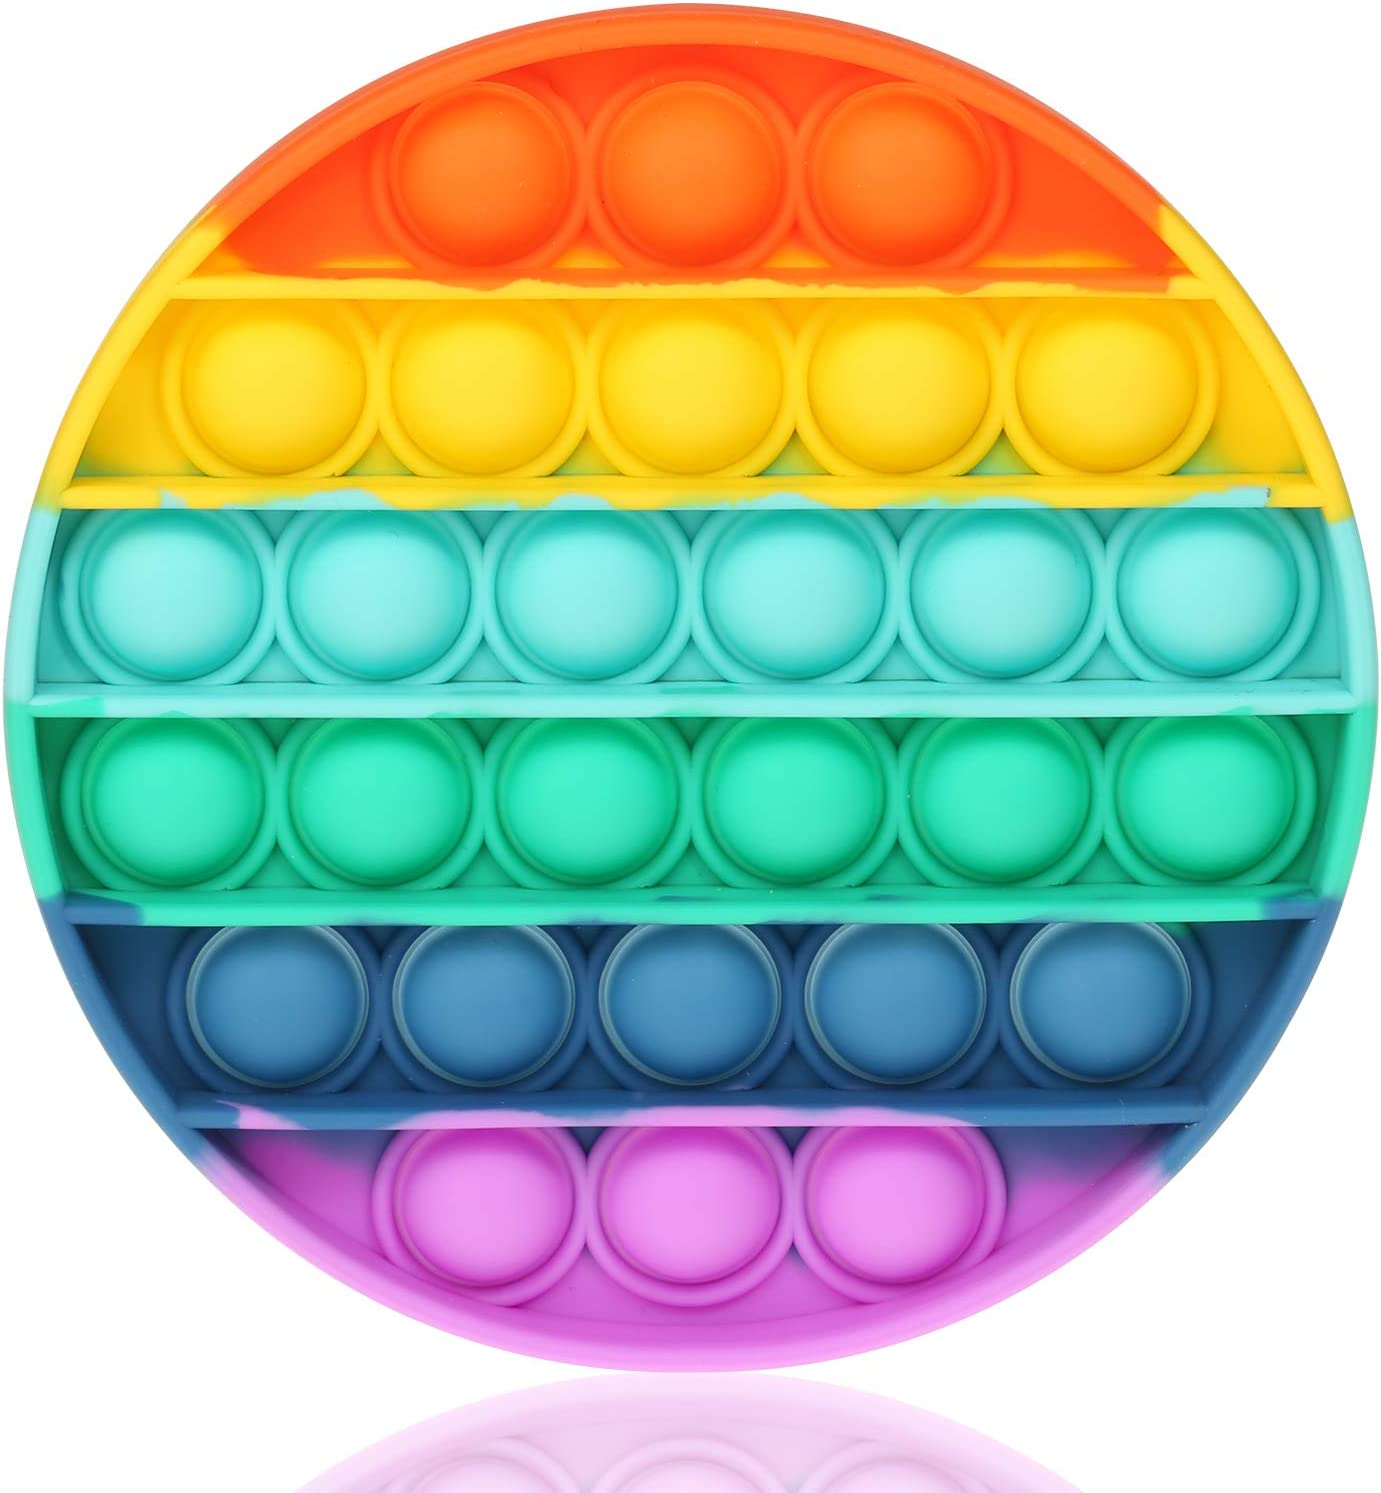 Amazon.com: Fidget Toy with Popping Sound Rainbow Square Push Bubble  Sensory Fidget Toys Pack for Anxiety & Stress Relief Autism Learning  Materials,Squeeze Toy for Kids Teens Office Older: Toys & Games